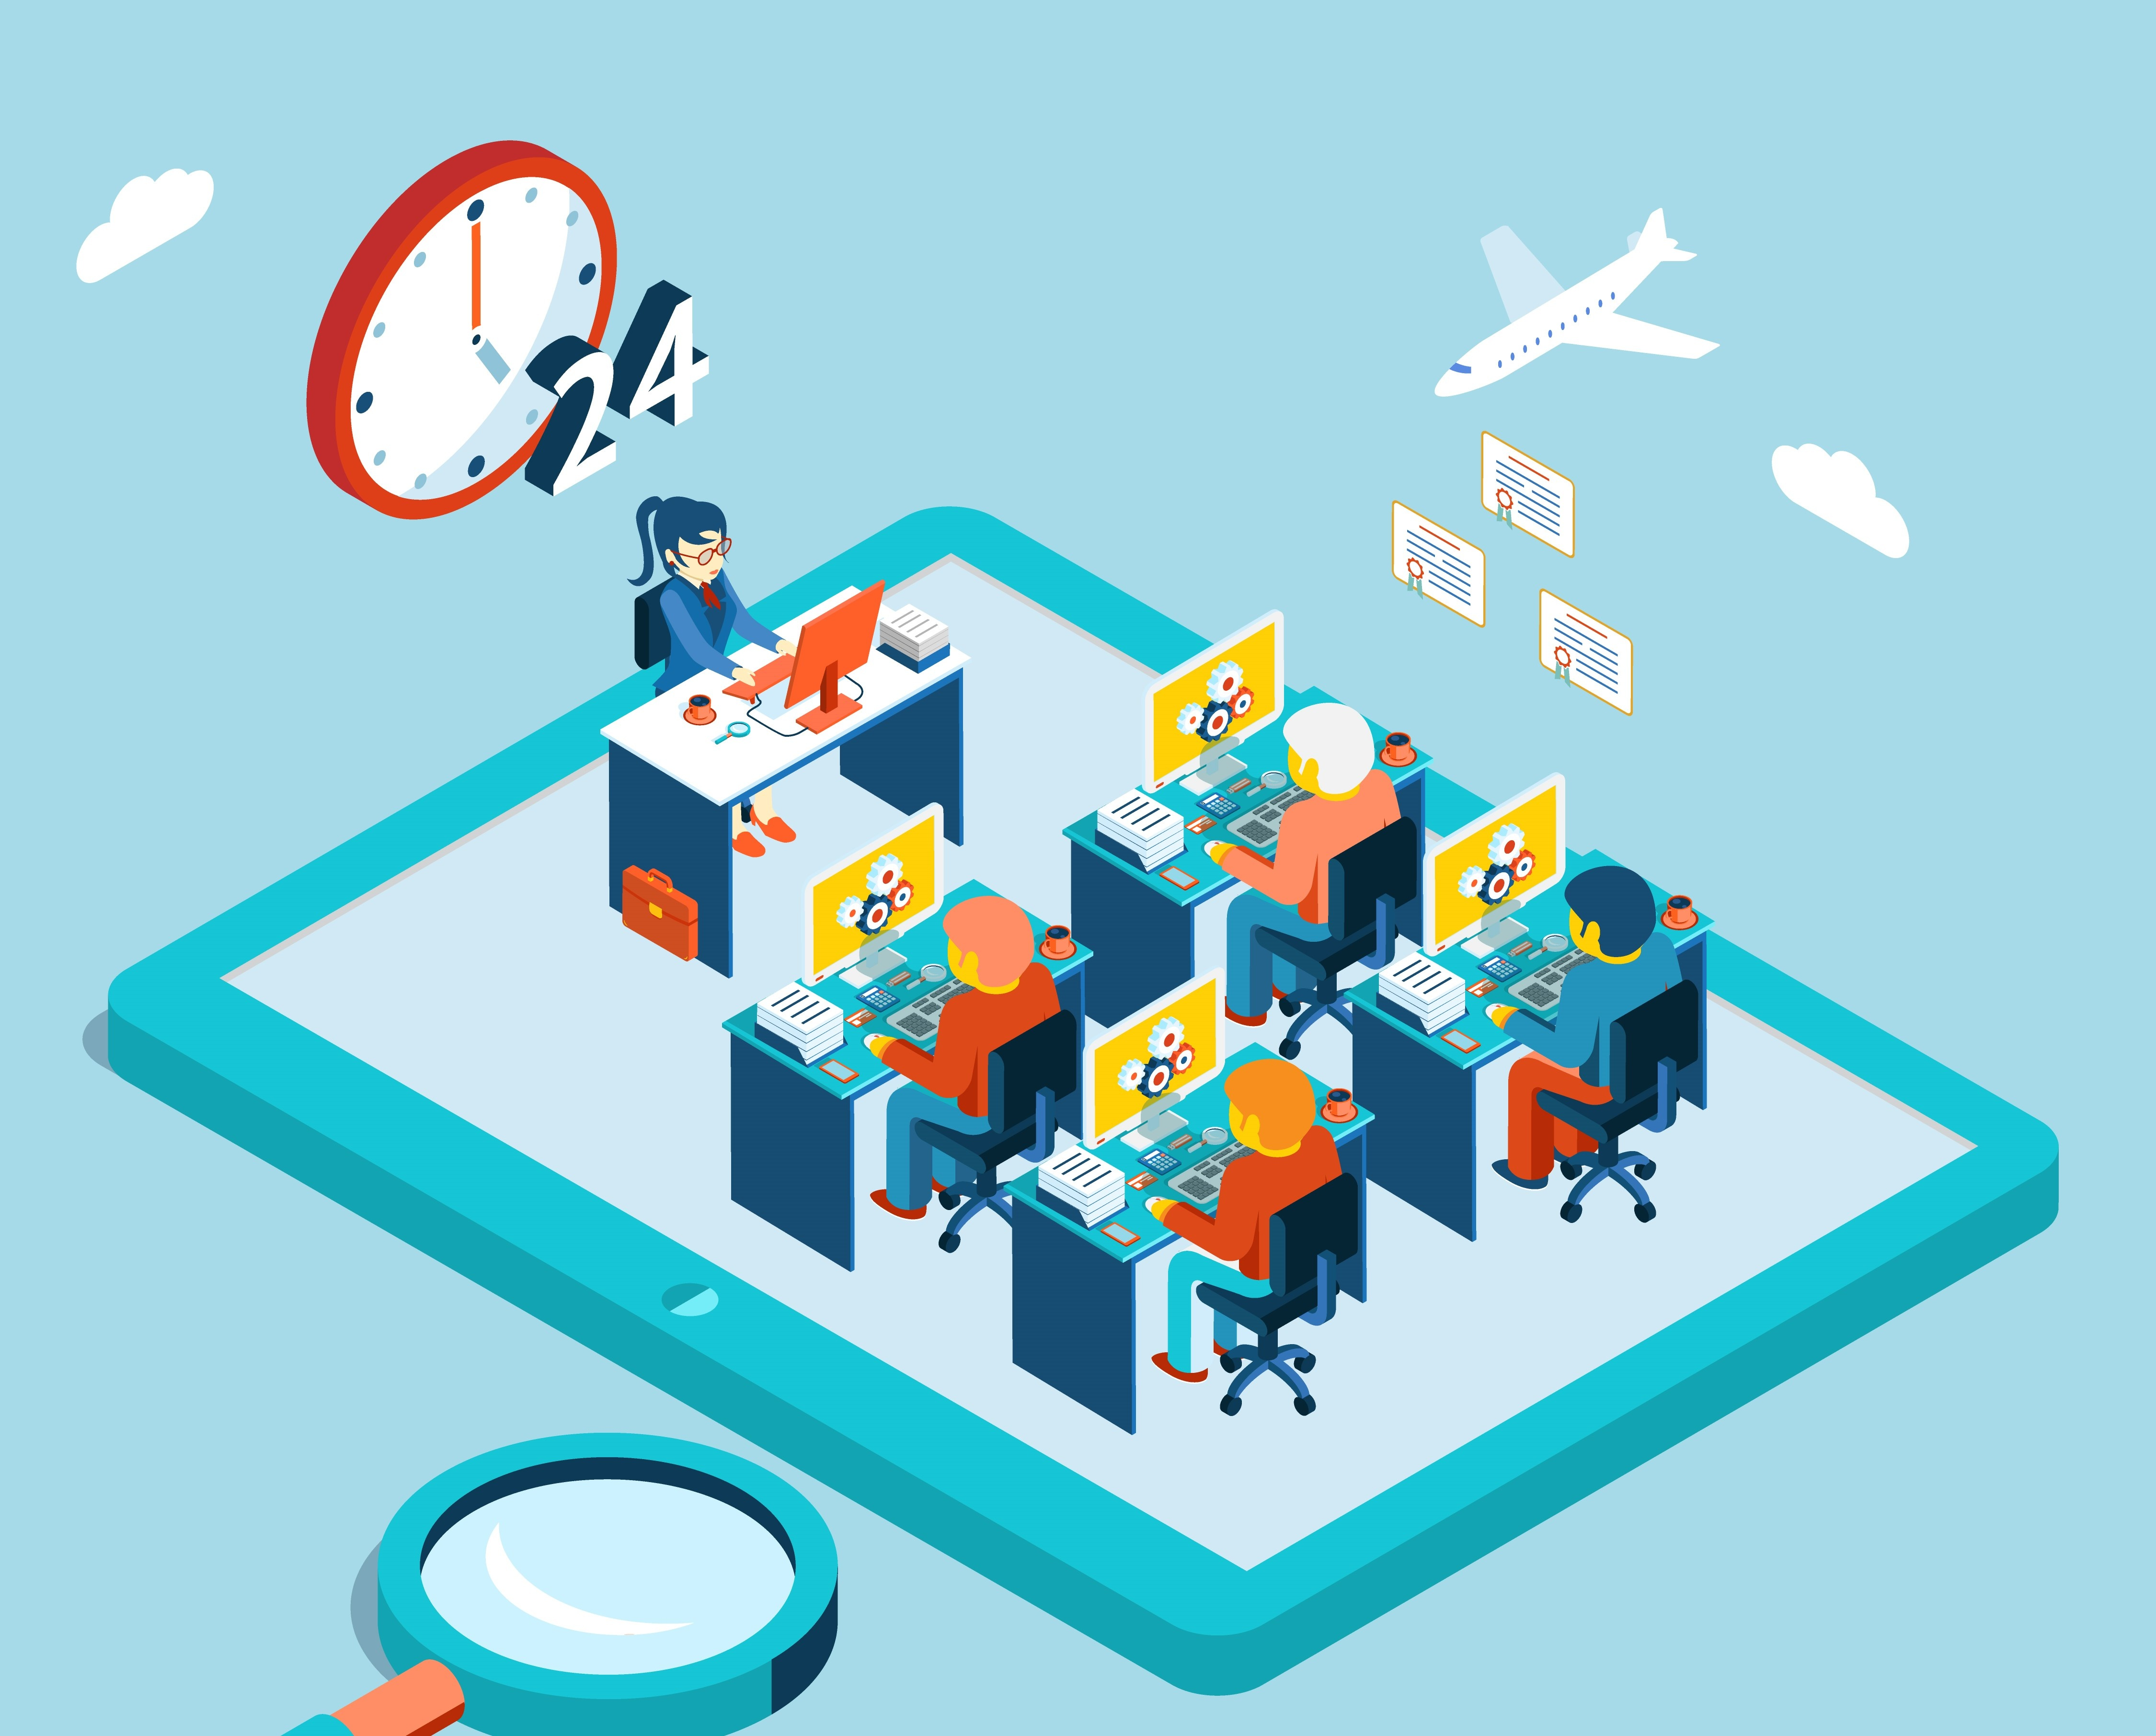 1501.m00.i104.n037.S.c12.Outsource_best_professionals_for_your_business._Global_Work_Marketplace_in_Web-1.jpg